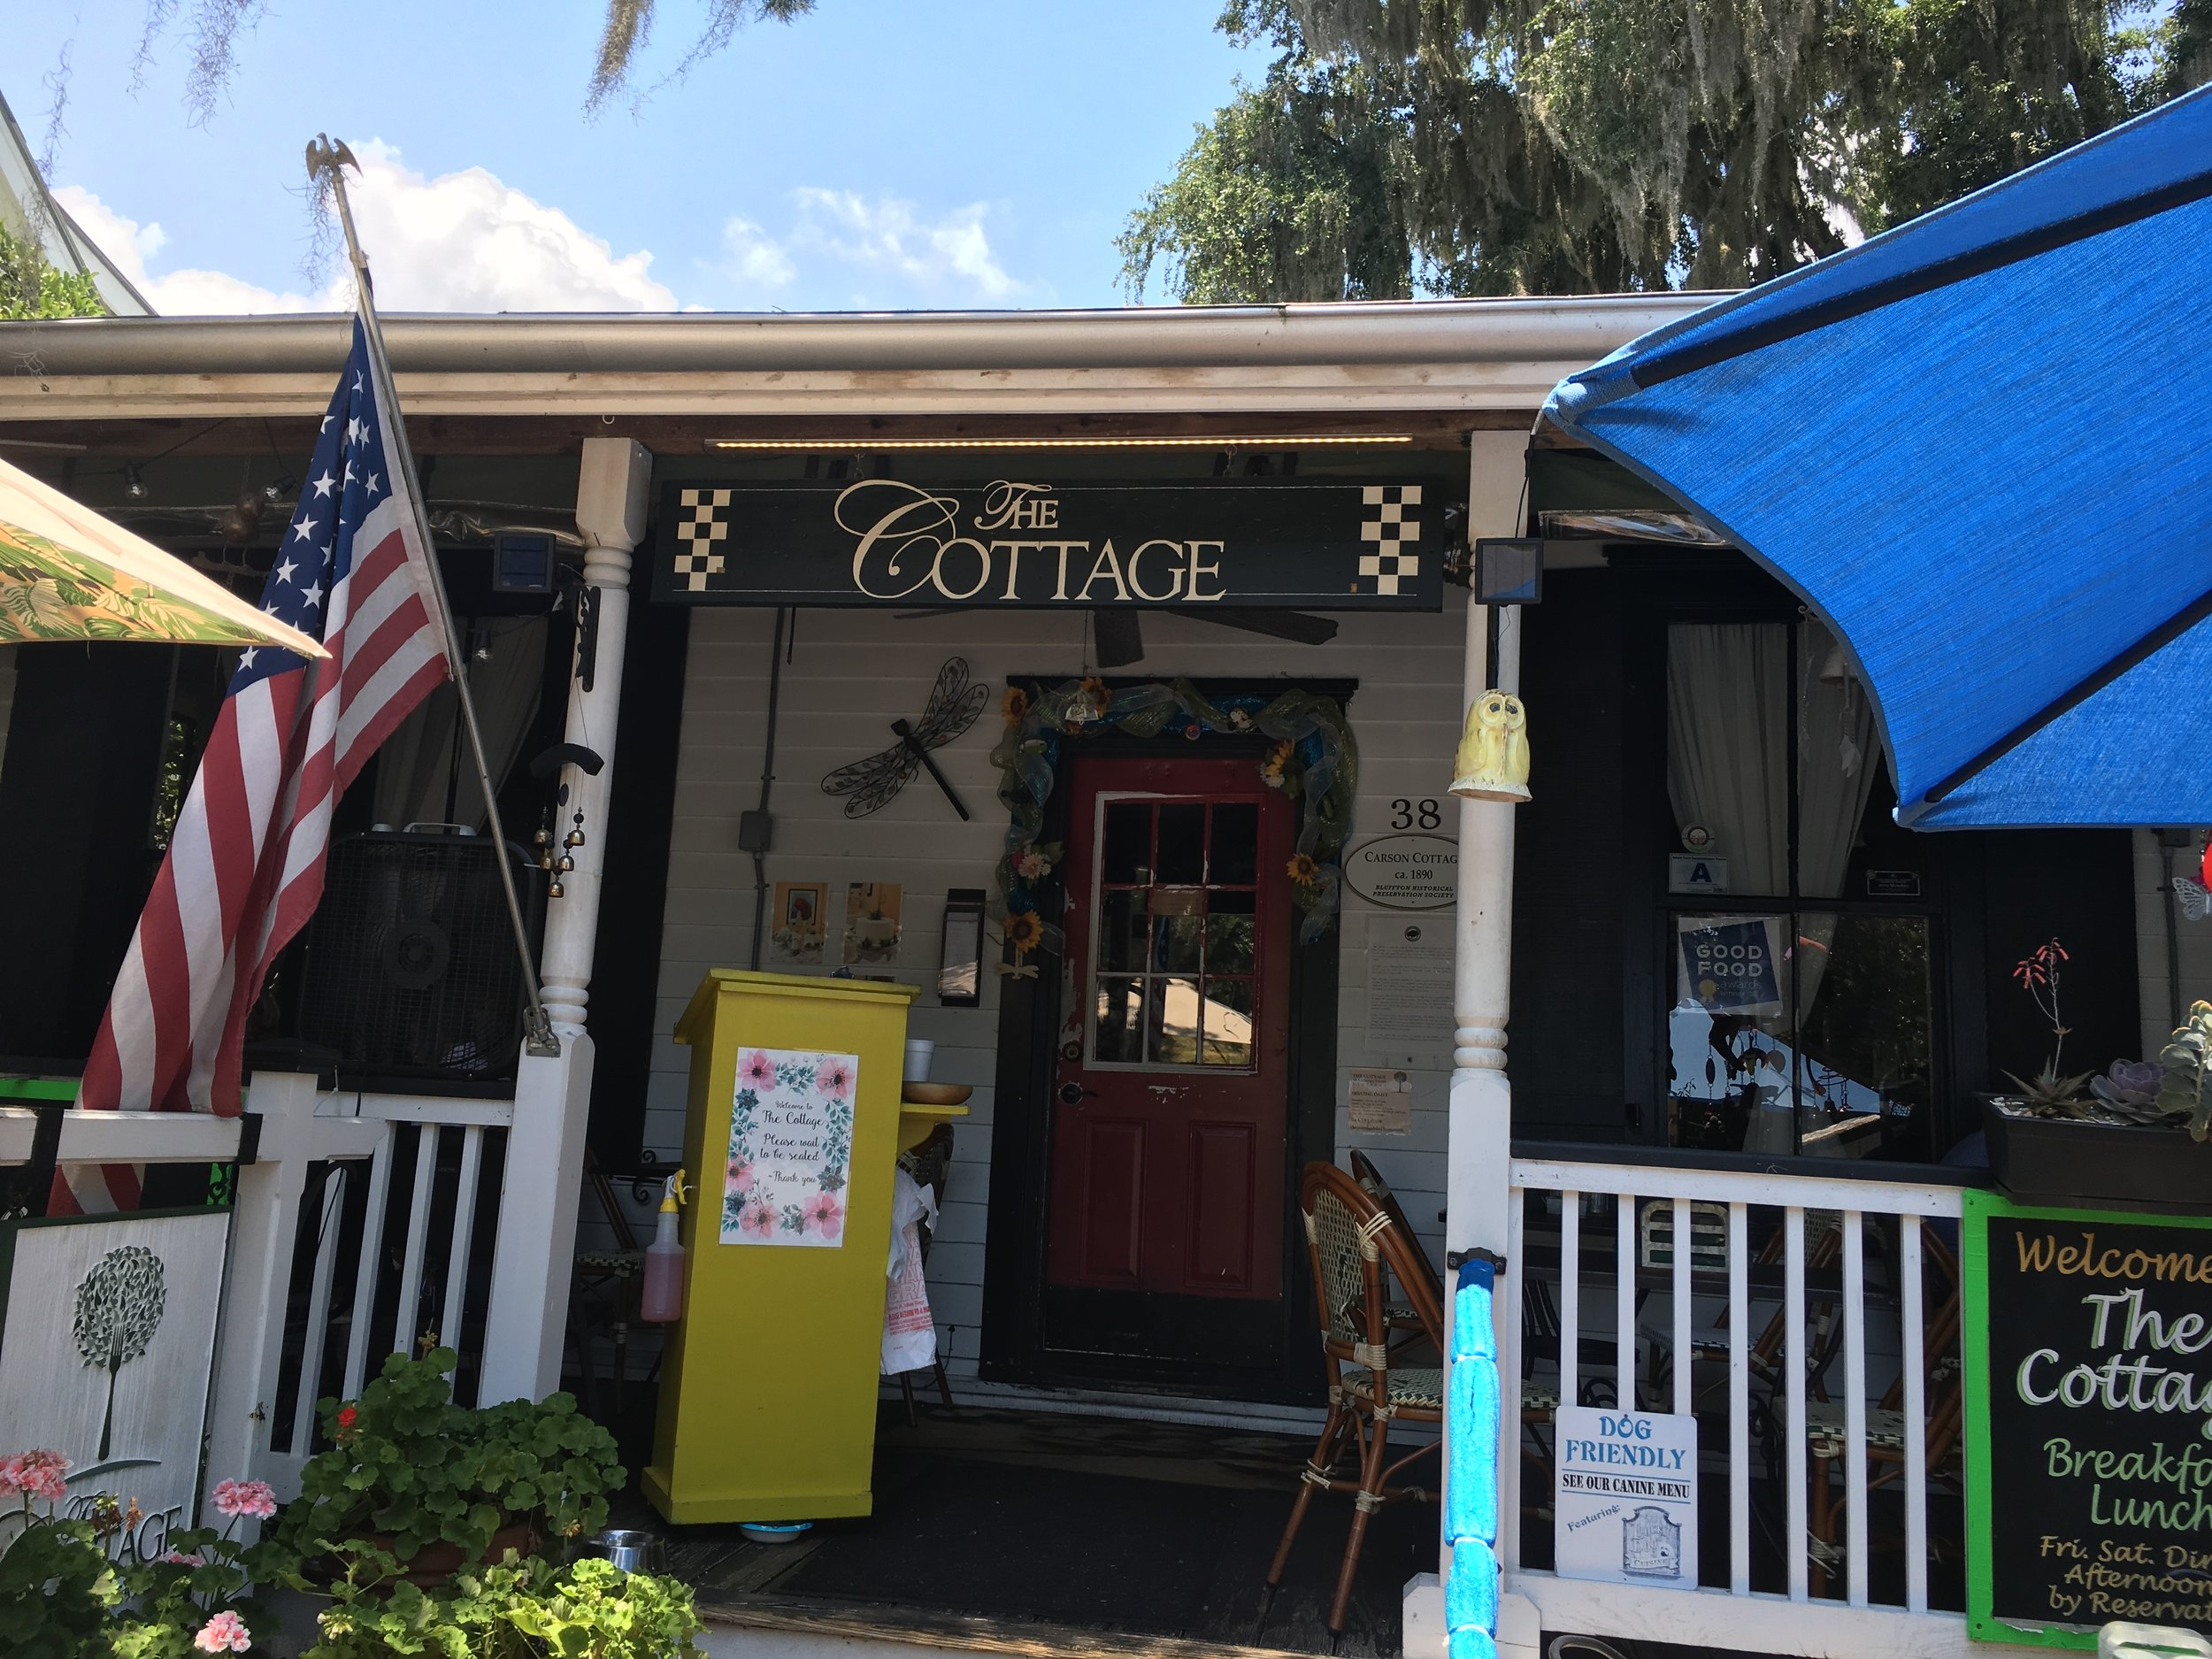 Bluffton - June 27, 2018 | FOODI go out to eat monthly with a group of friends. We call ourselves the Diners' Club, because there is no purpose to our meeting except to enjoy each other's company by enjoying a meal together. June's outing took us to The Cottage in Bluffton, S.C., an easy 40-minute drive from Savannah. Bluffton's main drag is Calhoun Street, and that's where we found the quaint little restaurant, located in what really appears to be an old cottage-style home. Seating is available on the porch and in two small dining rooms inside, which we opted for since we've been…